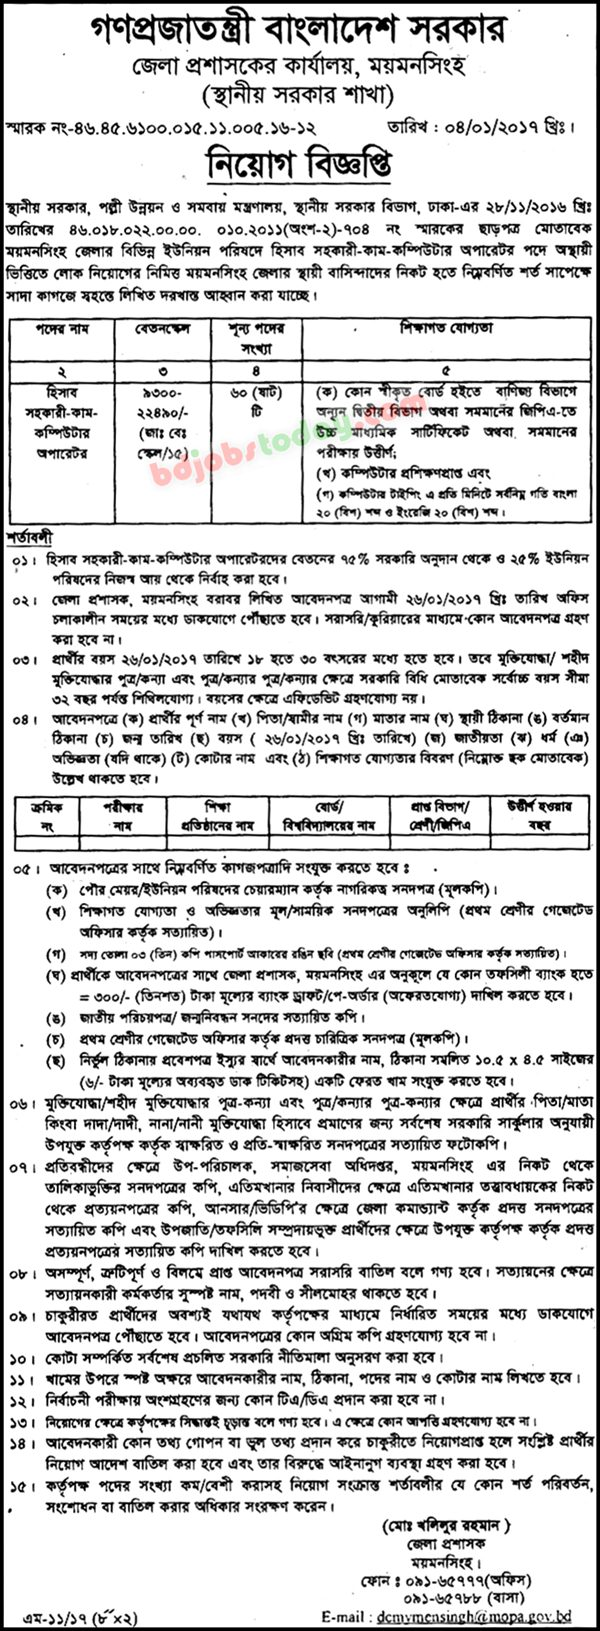 Office of District Commissioner, Mymensingh jobs